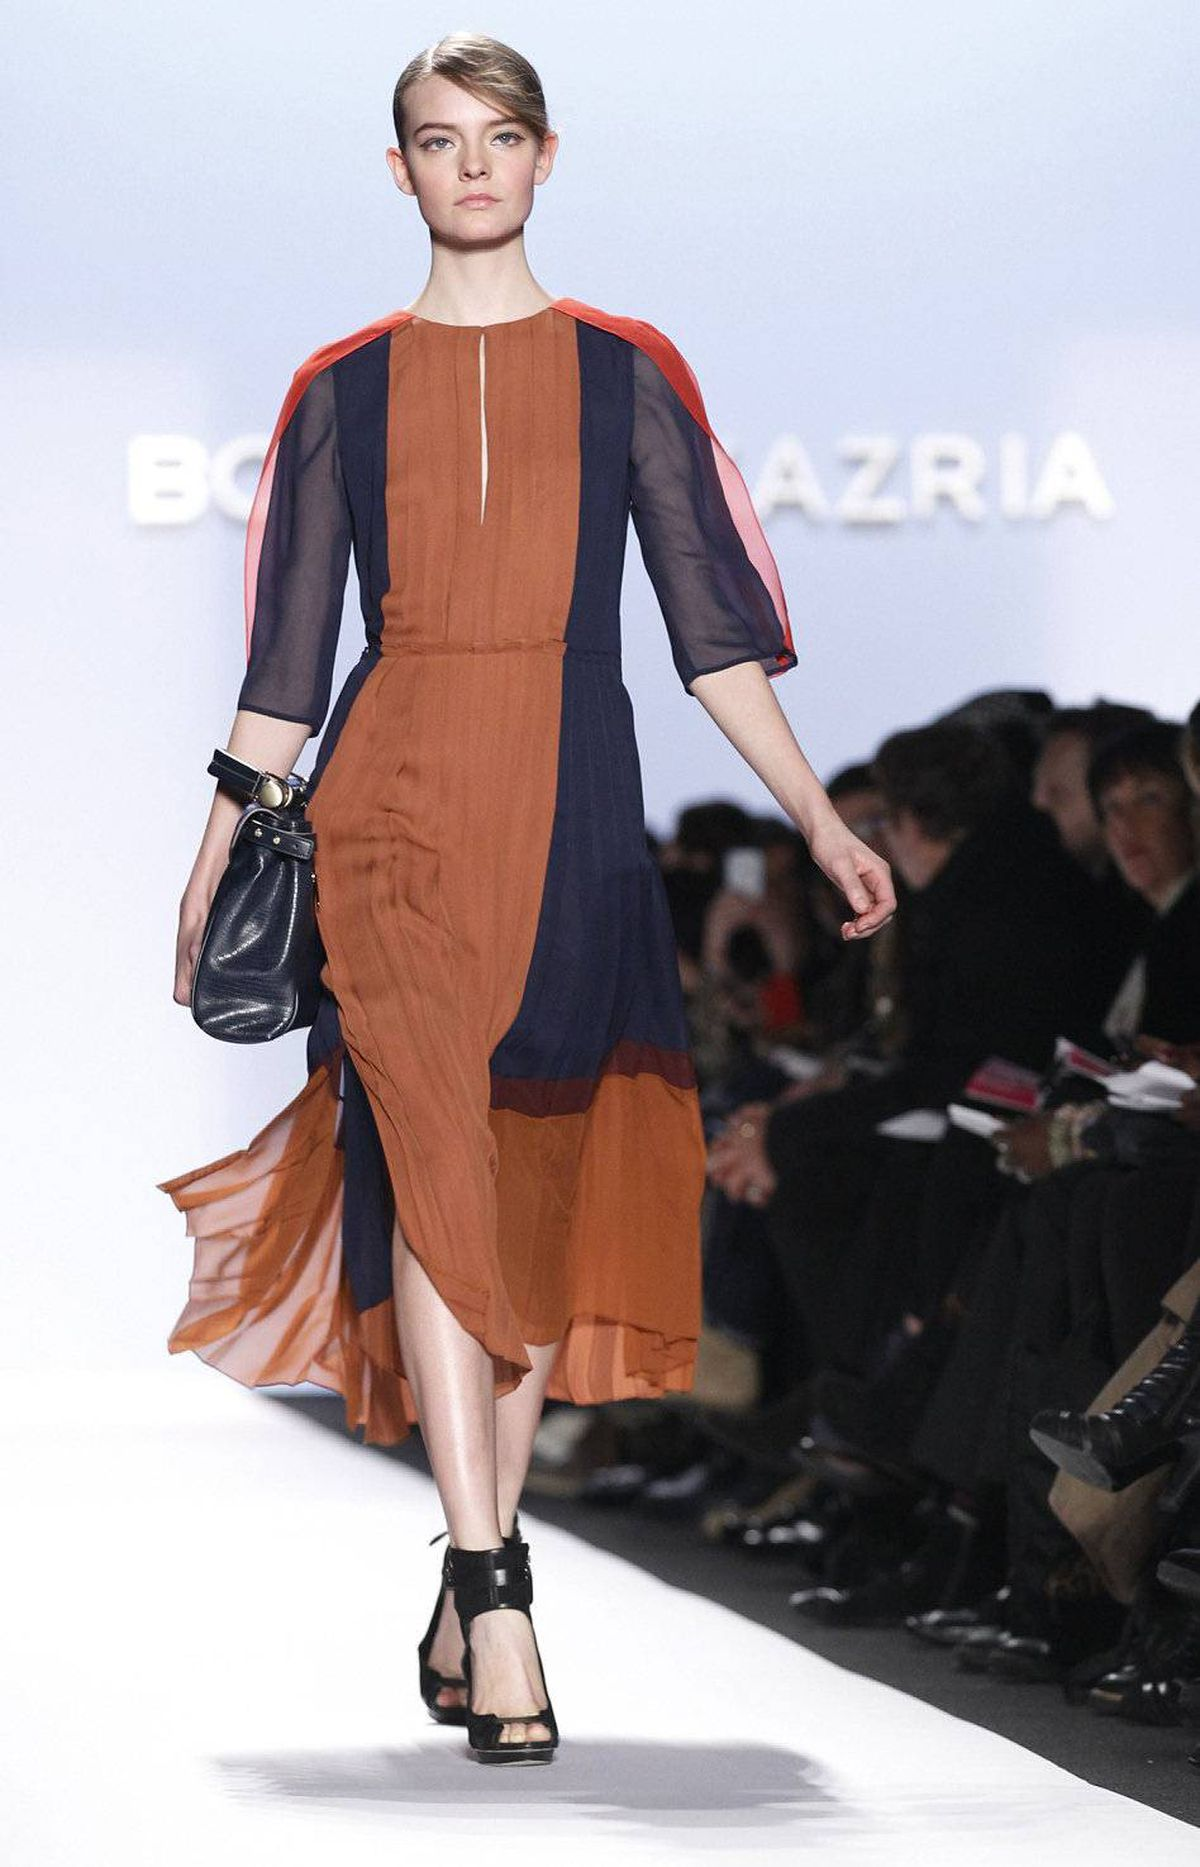 For Fall 2012, BCBG presented a collection inspired by the architectural aesthetic of Bauhaus style. Going from the functional, linear ideas espoused by Walter Gropius to these floaty, pleated dresses may be a bit of a stretch; but the colour-blocked palette is certainly borrowed from painter Josef Albers.